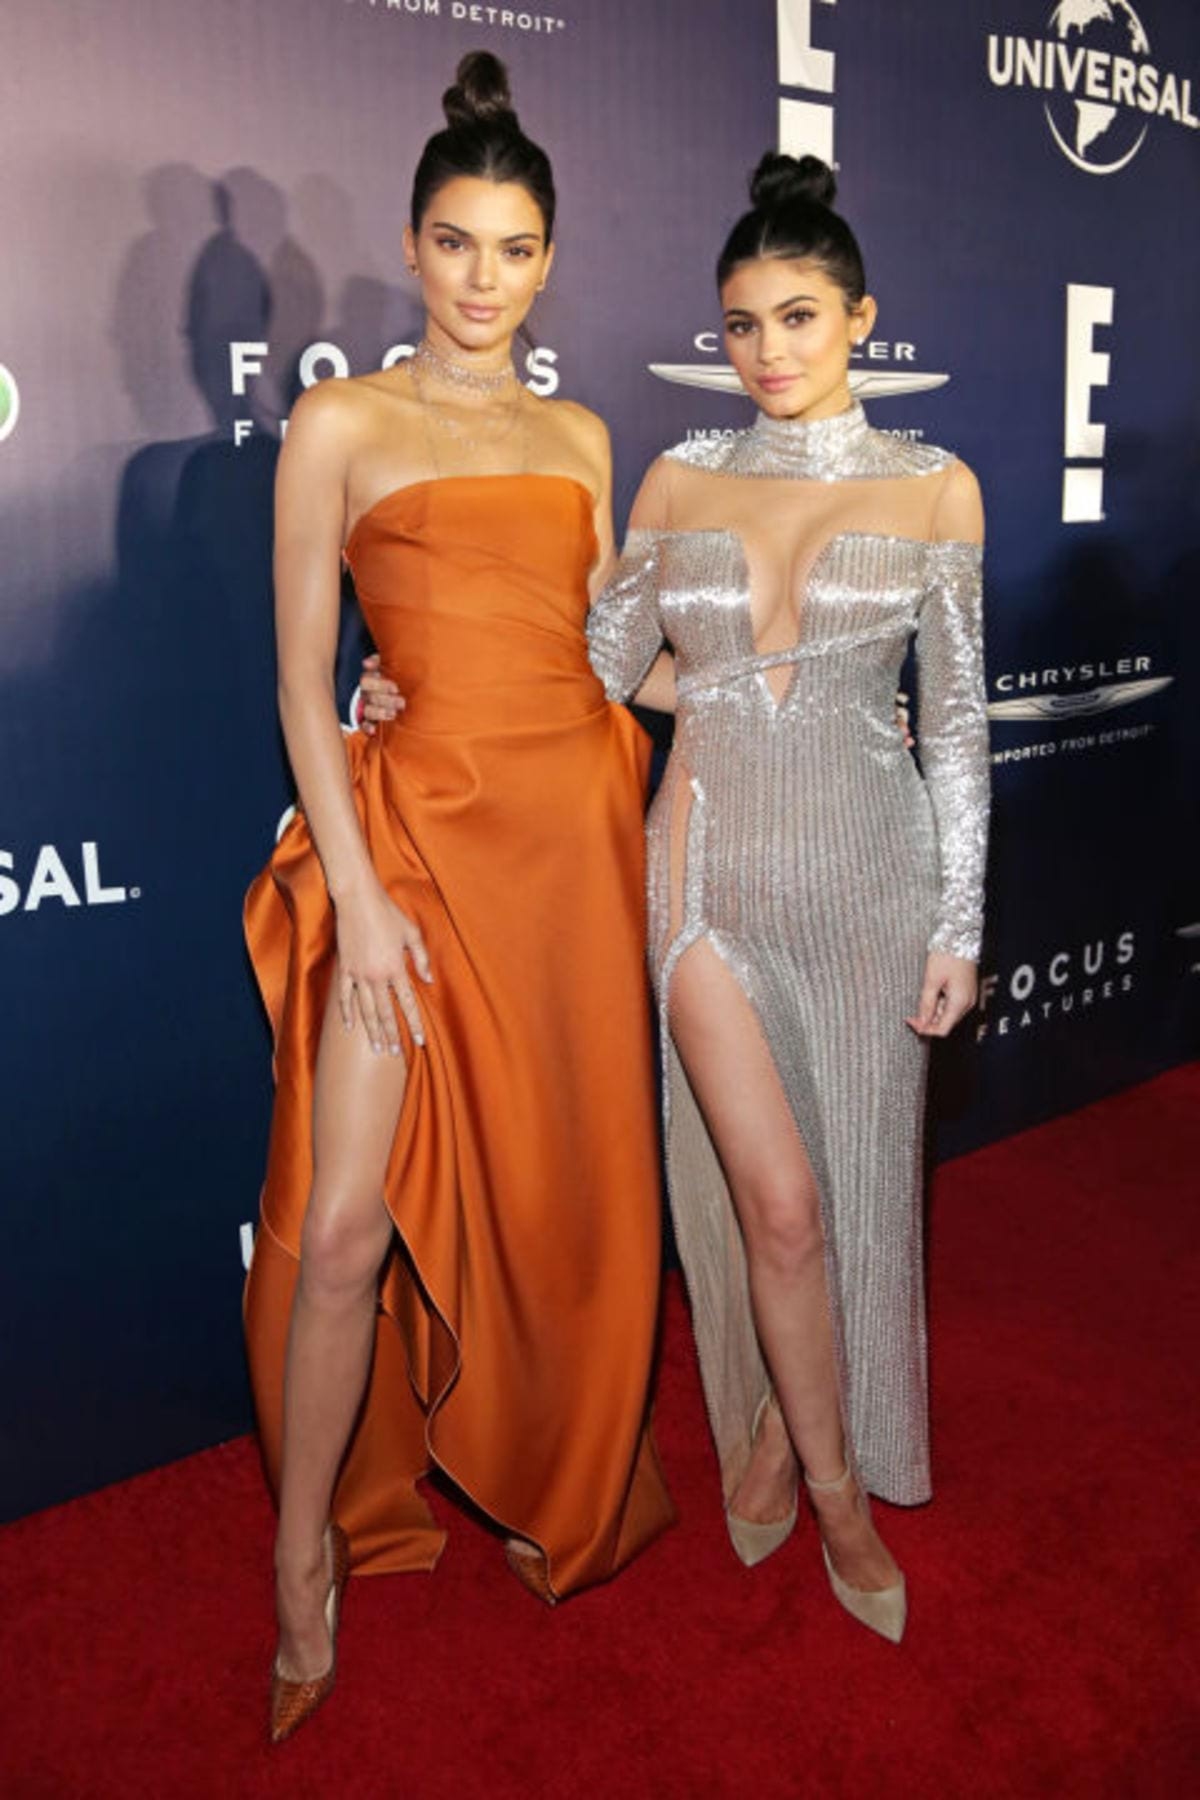 hbz-gg-after-party-nbc-kendall-jenner-and-kylie-jenner